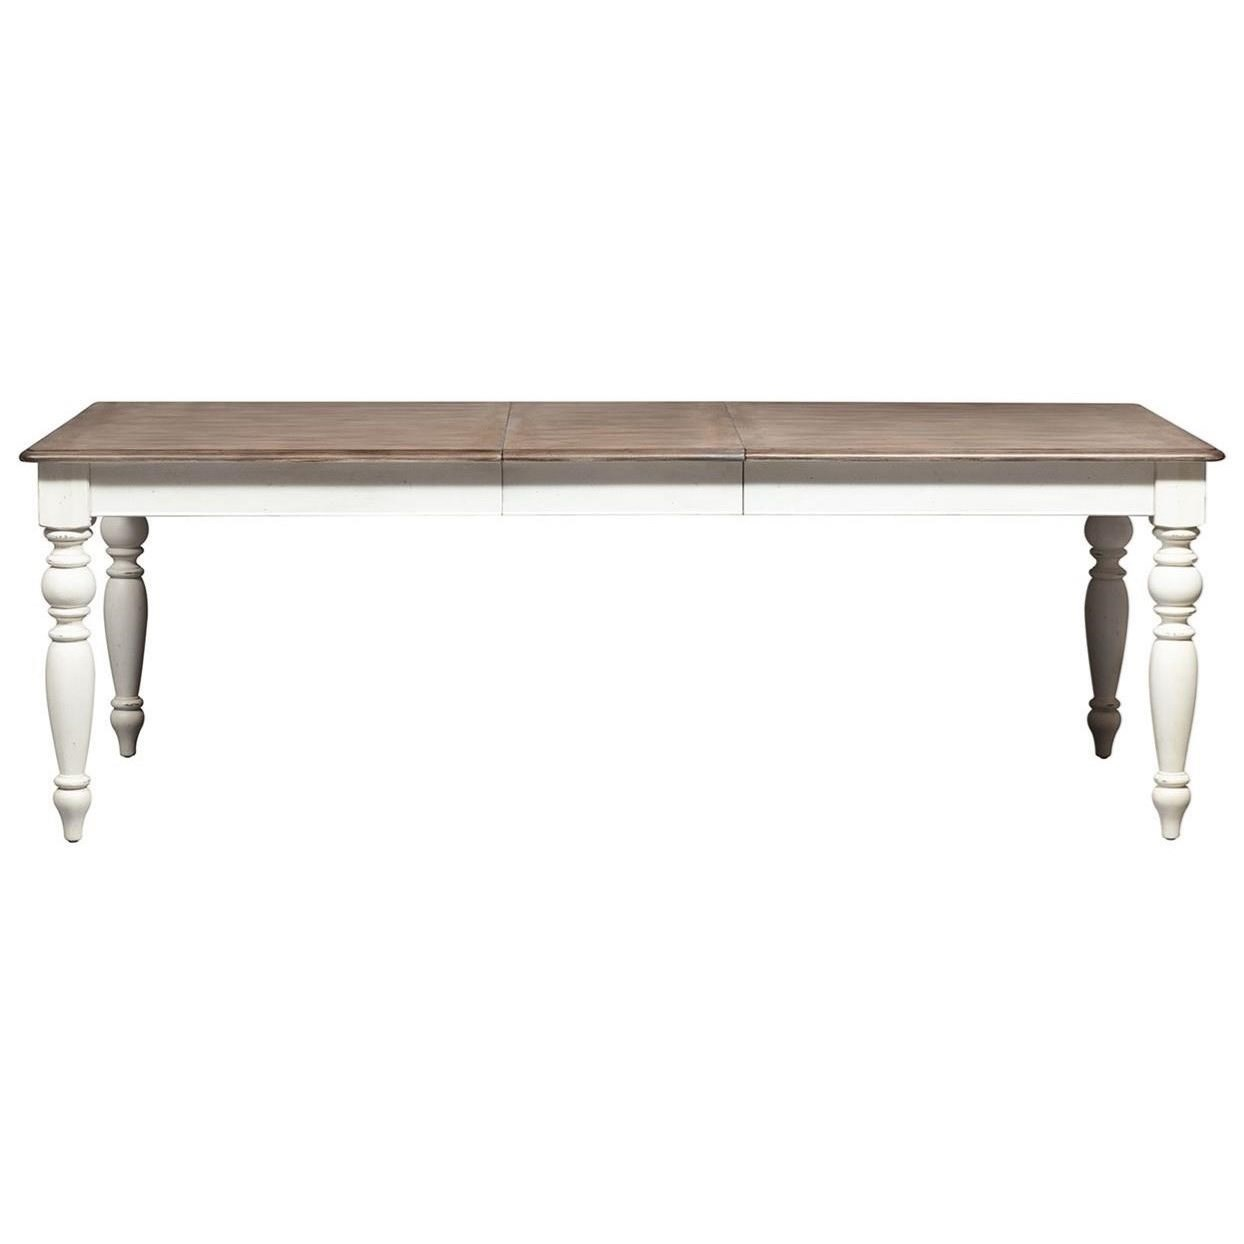 Abbey Road Rectangular Leg Table by Liberty Furniture at Corner Furniture